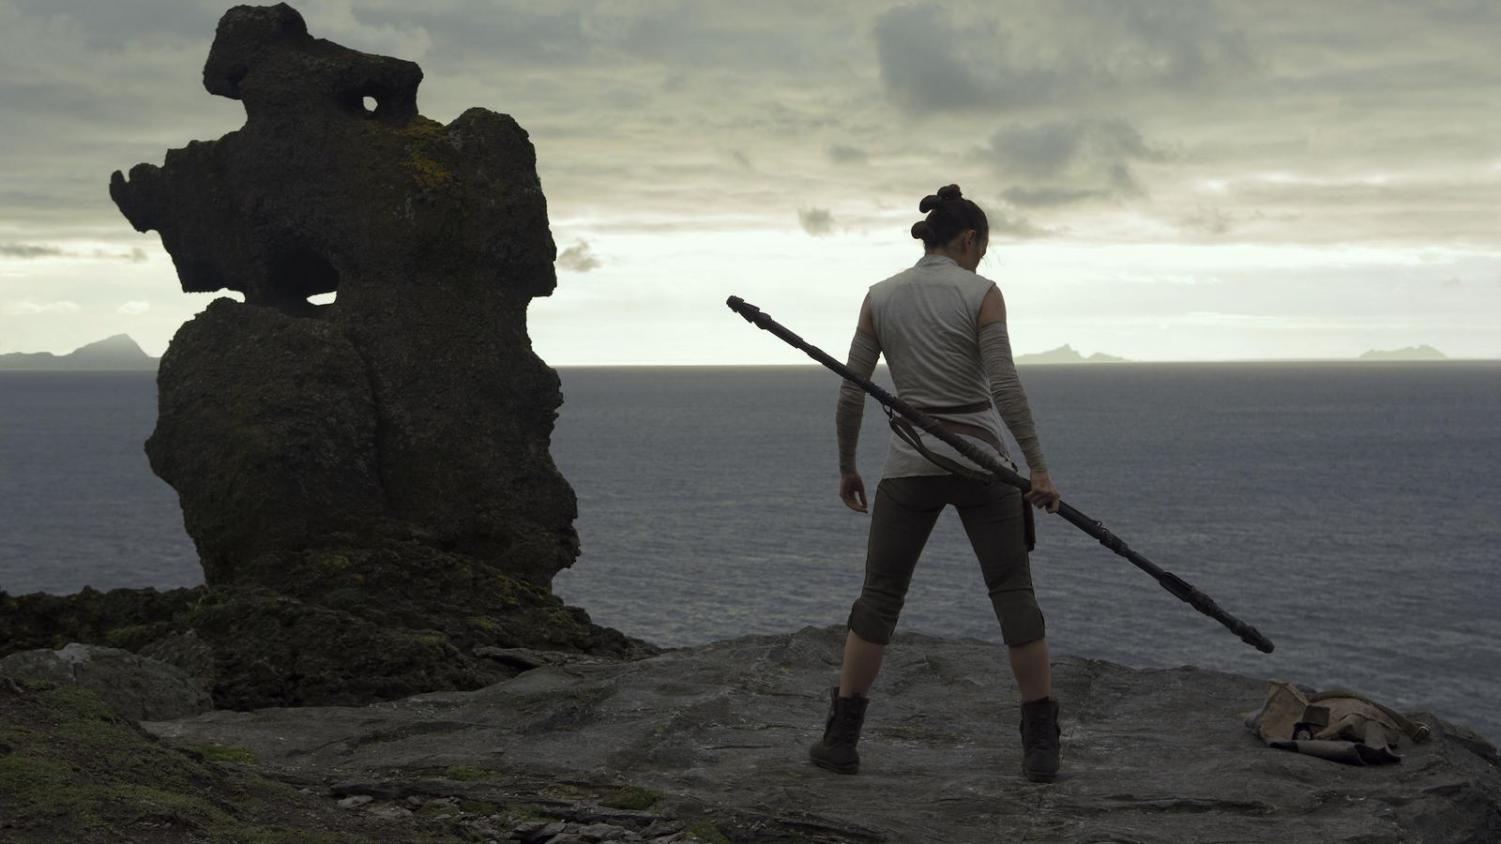 Rey (Daisy Ridley) trains her combat skills on Luke Skywalker's hideout. (Photo courtesy Lucasfilm)